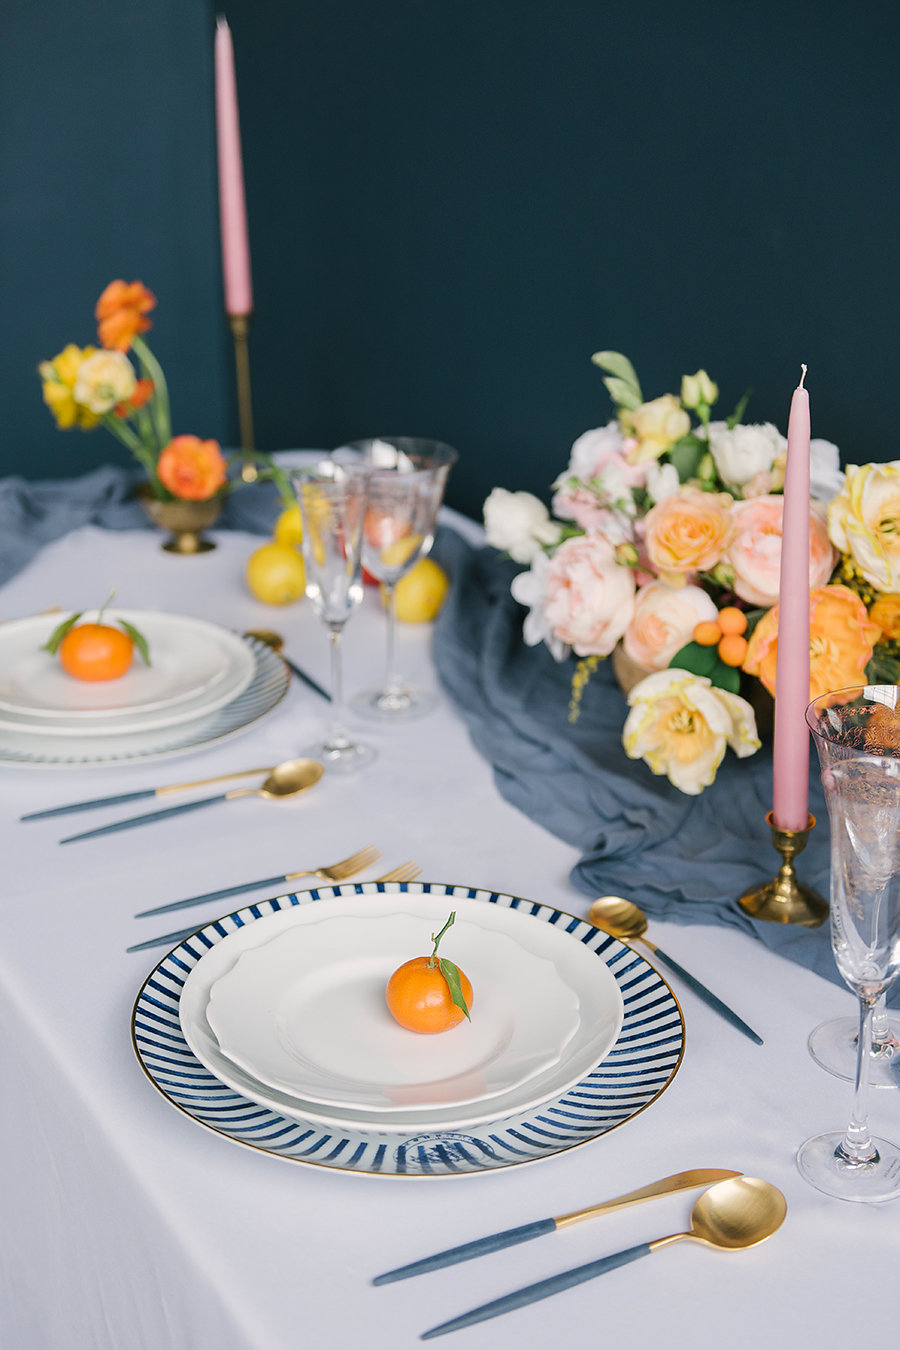 wedding tablescapes - photo by Ashlee Brooke Photography http://ruffledblog.com/summertime-citrus-wedding-inspiration